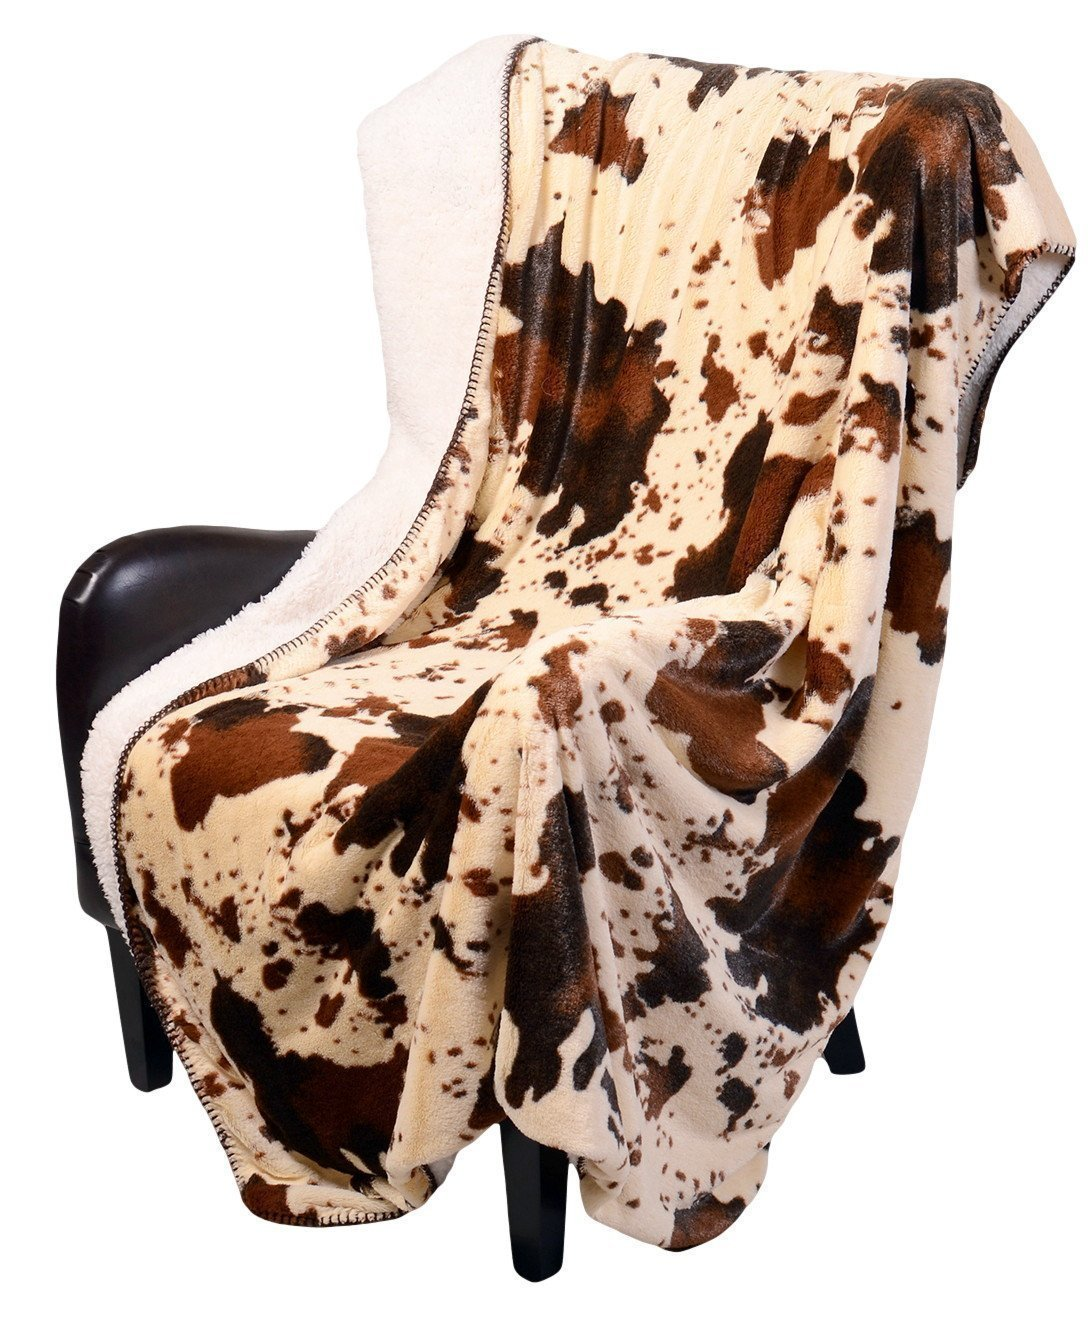 REGAL 50 x 70 Sherpa Luxury Throw Blanket - The Wood's White Camo Regal Comfort COMINHKR064240